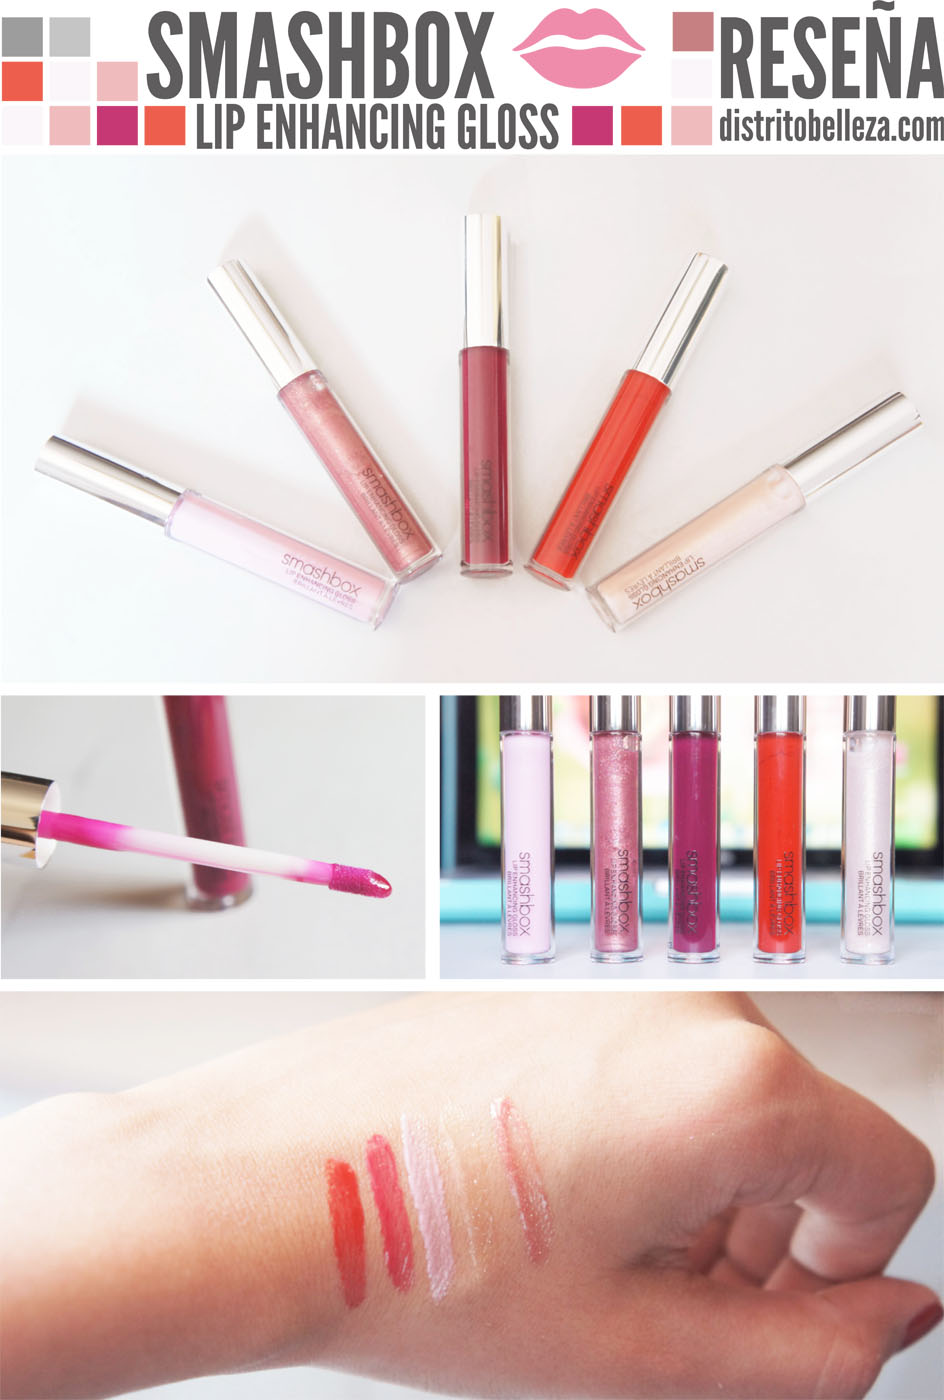 Reseña Smashbox lip gloss